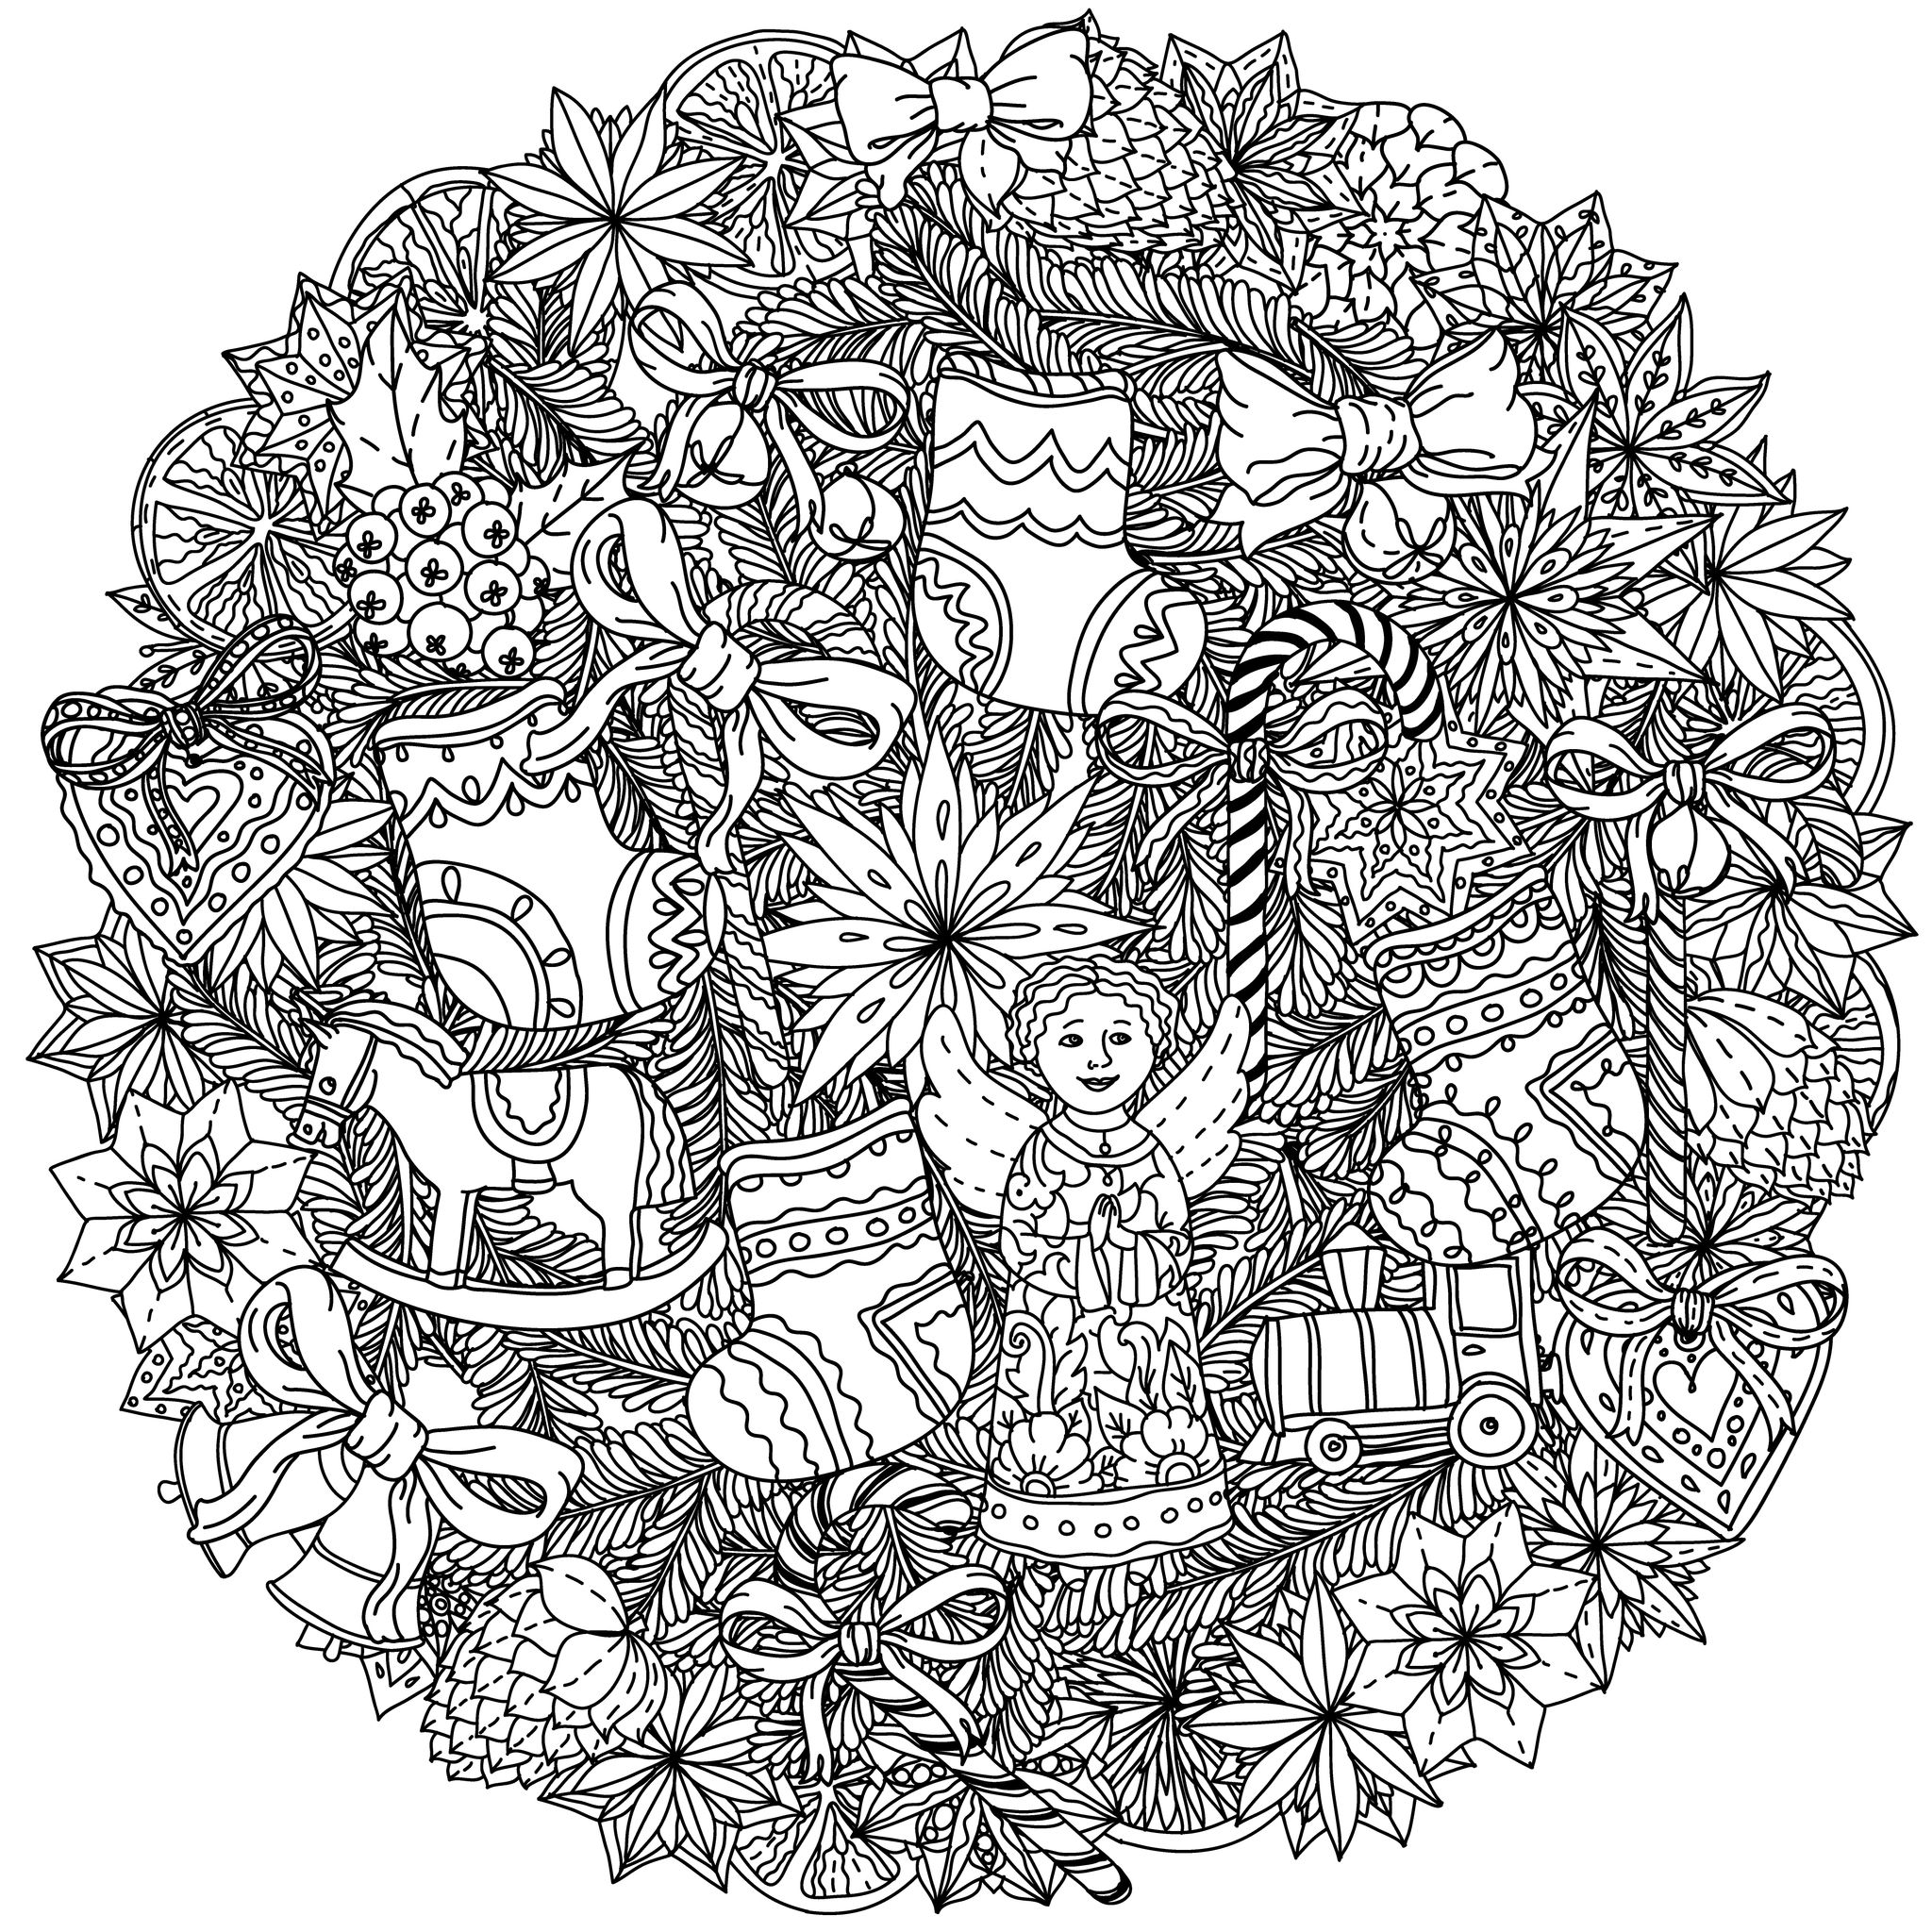 Coloring Page Christmas Mandala Wreath With Decorative Items Angels Ribbons Stars Fruits